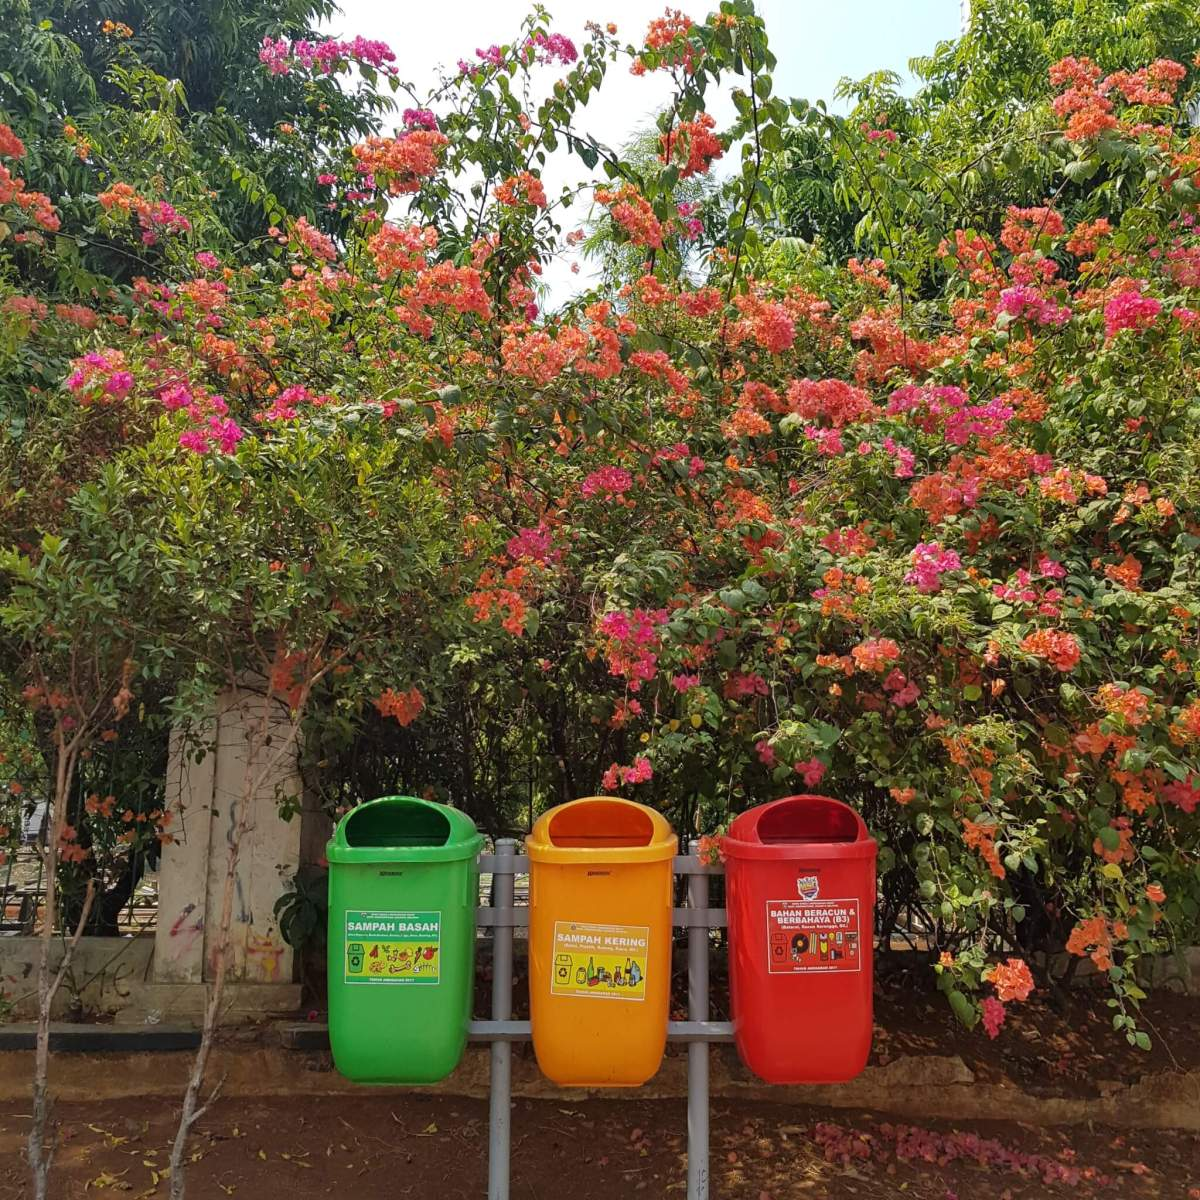 Reduce Reuse Recycle | Reduce Your Ecological Footprint